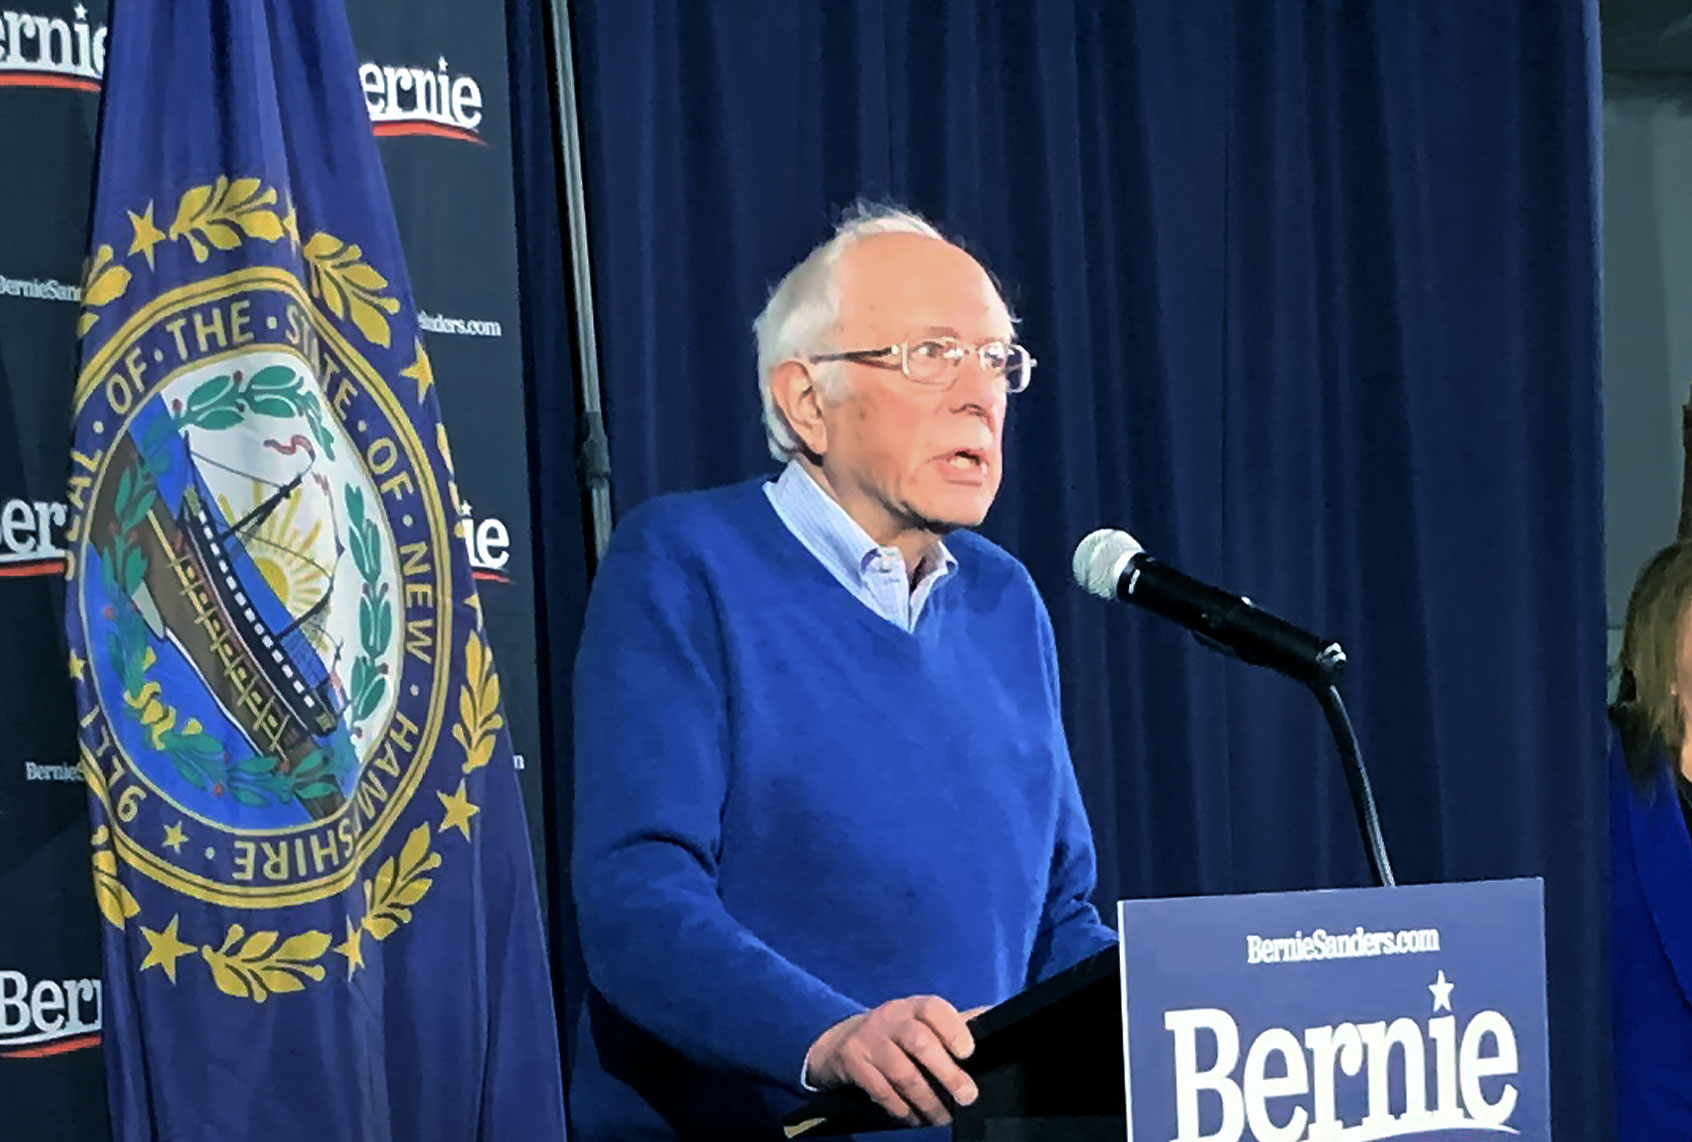 Bernie's no radical: his agenda harks back to the framing of the U.S. constitution